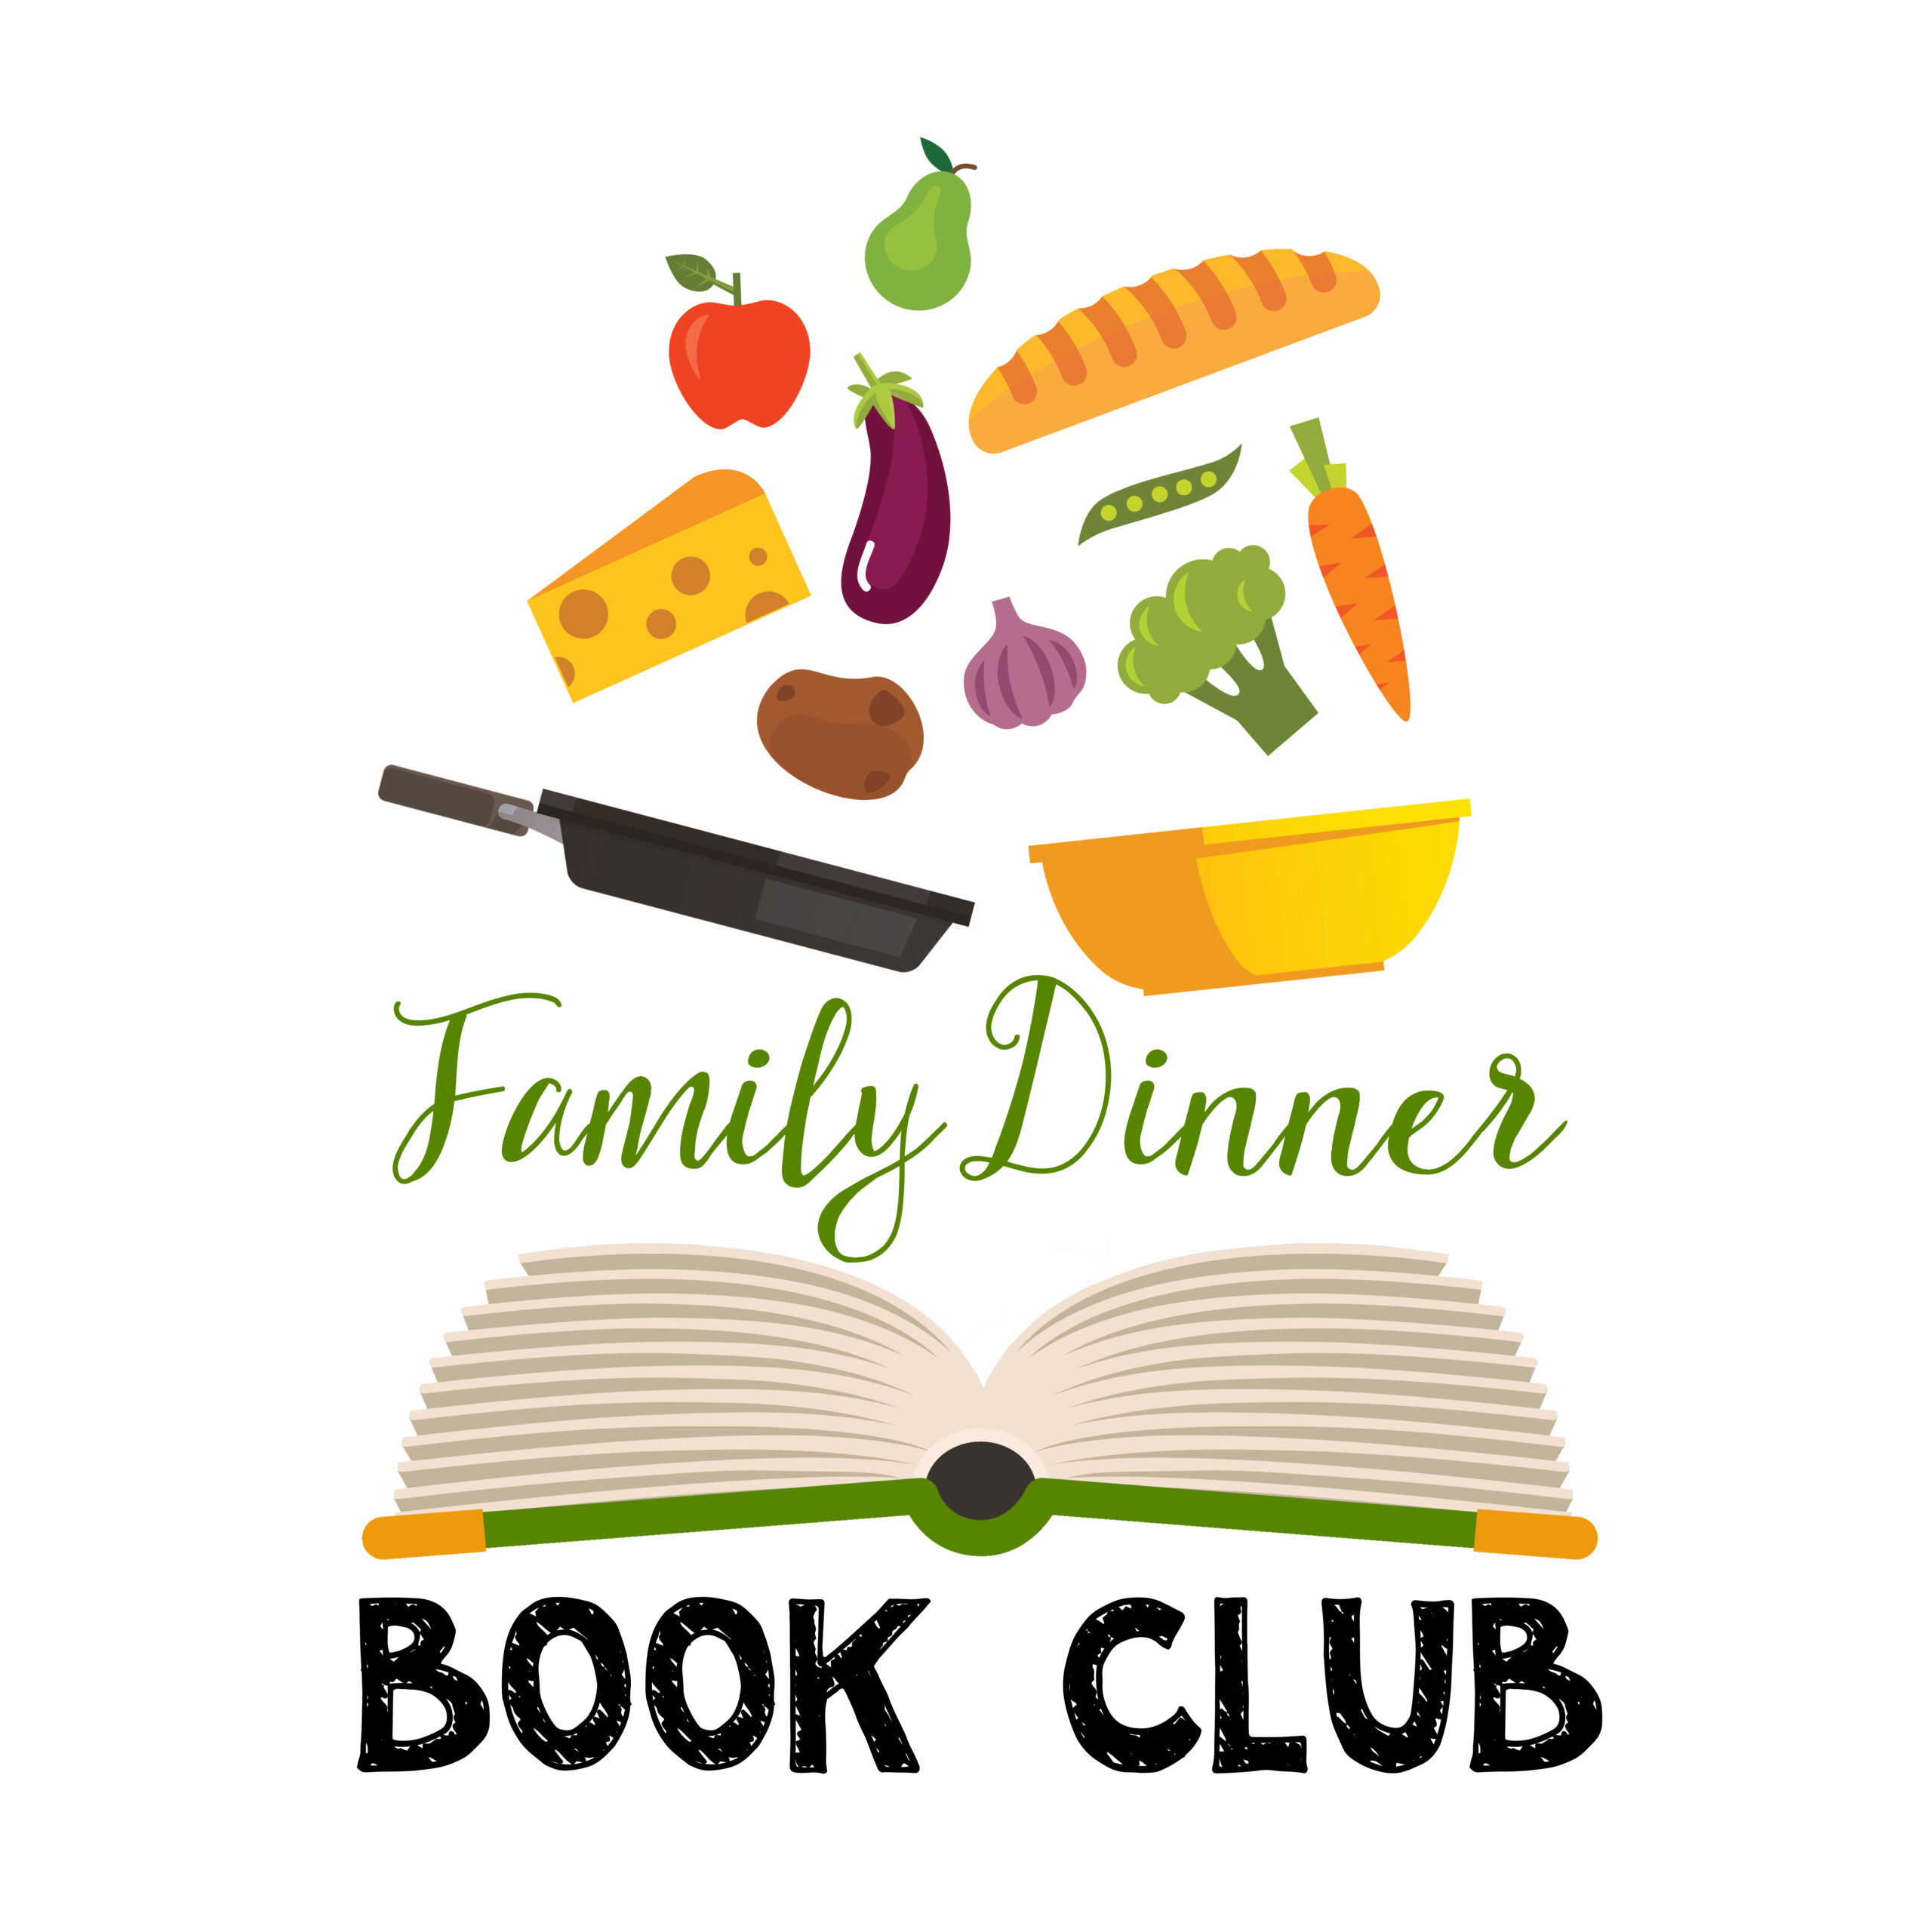 Over 26 Family Dinner Book Club ideas together. Themed menus, table crafts for families, question prompts, and family service projects ideas included for FREE.